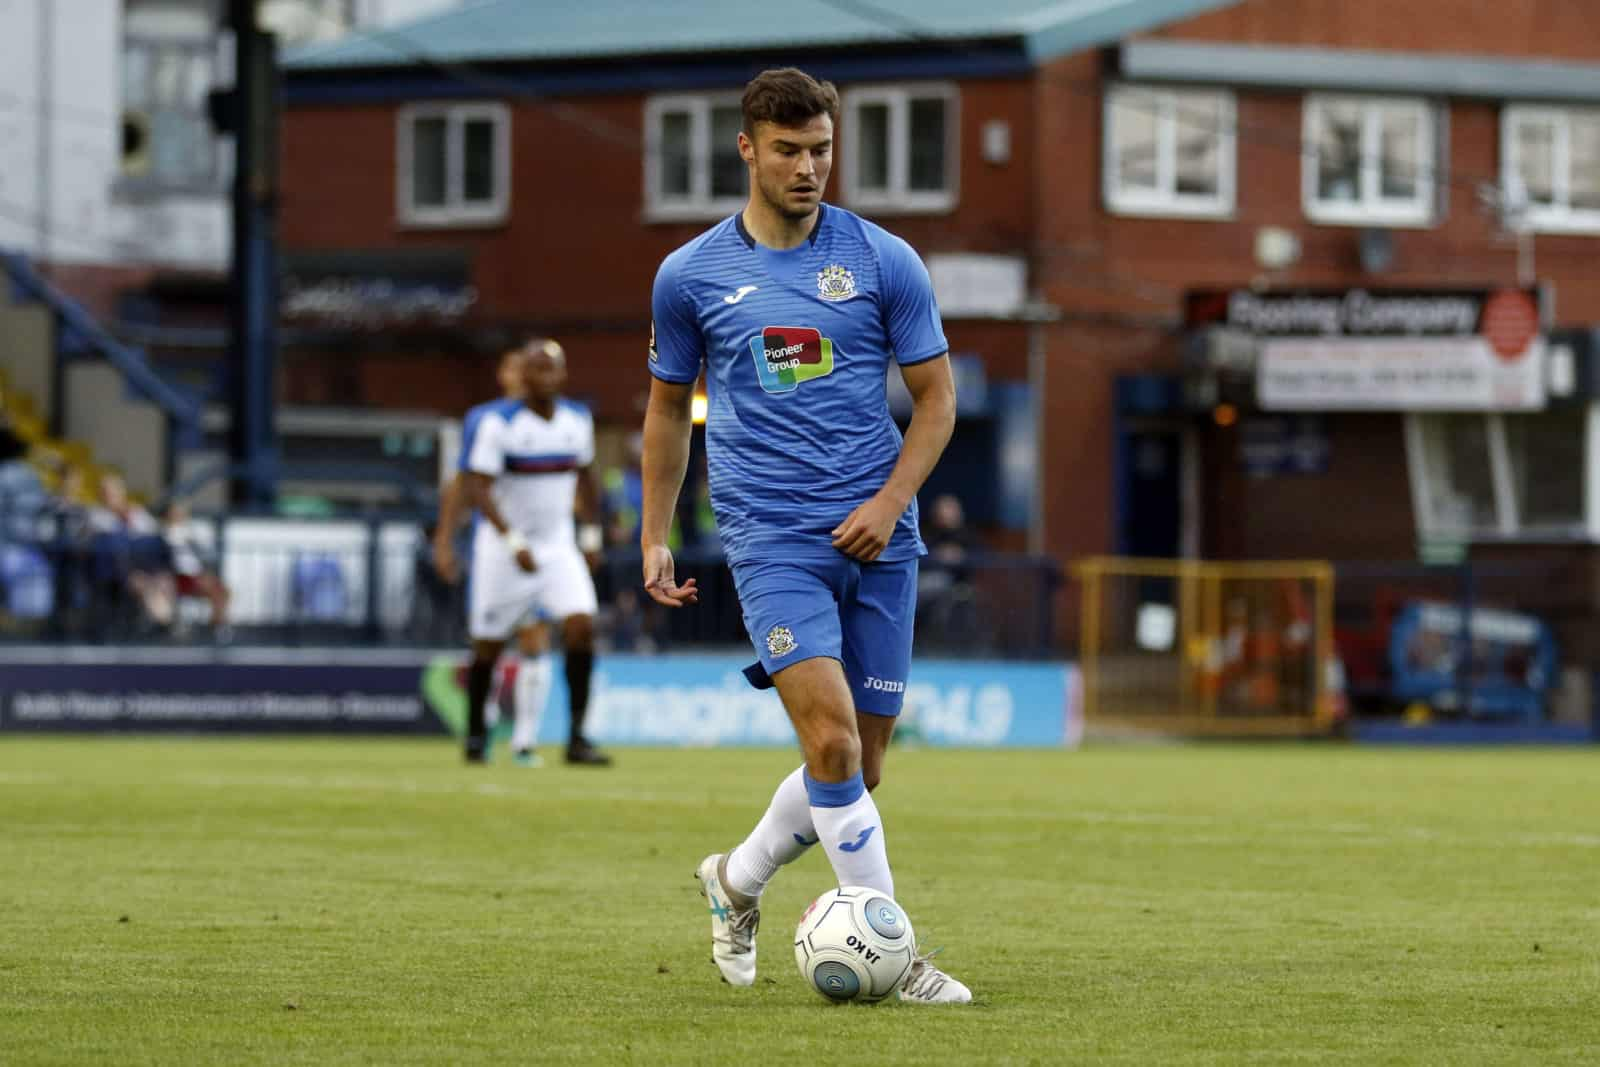 Jake Kirby, Stockport County